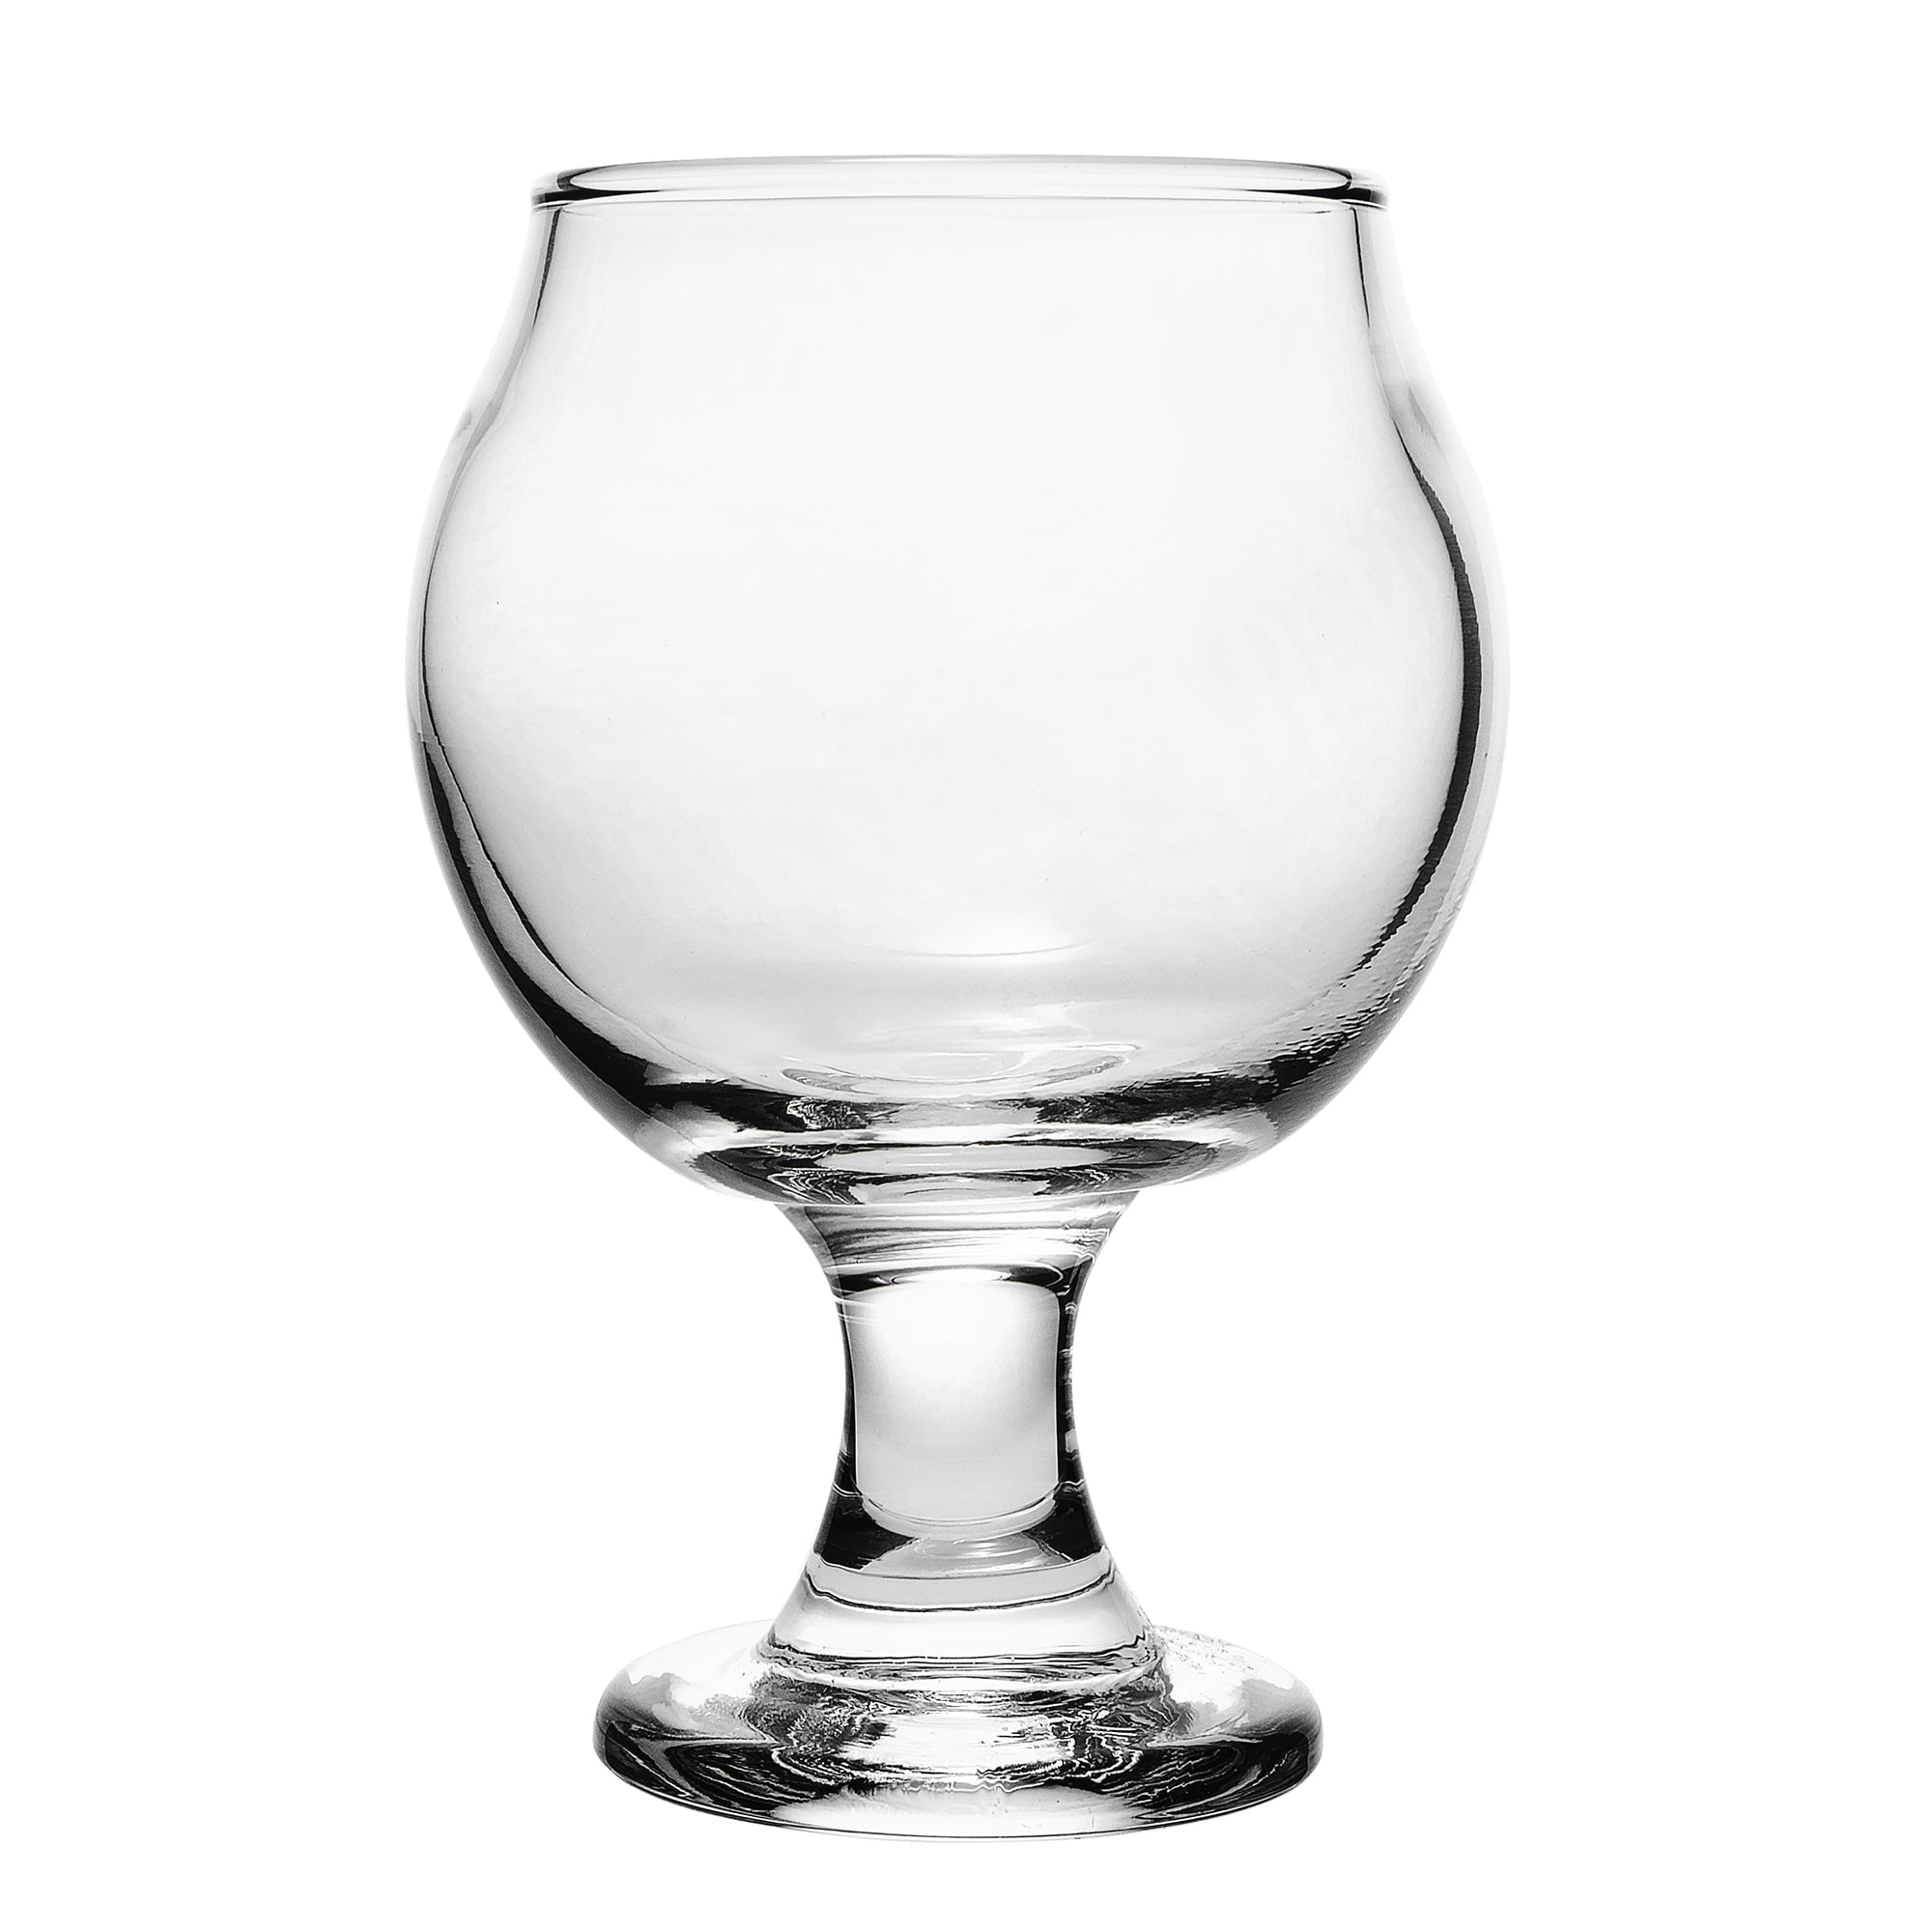 Libbey 3816 5-oz Safedge Belgian Beer Taster Glass Fits Model 96381